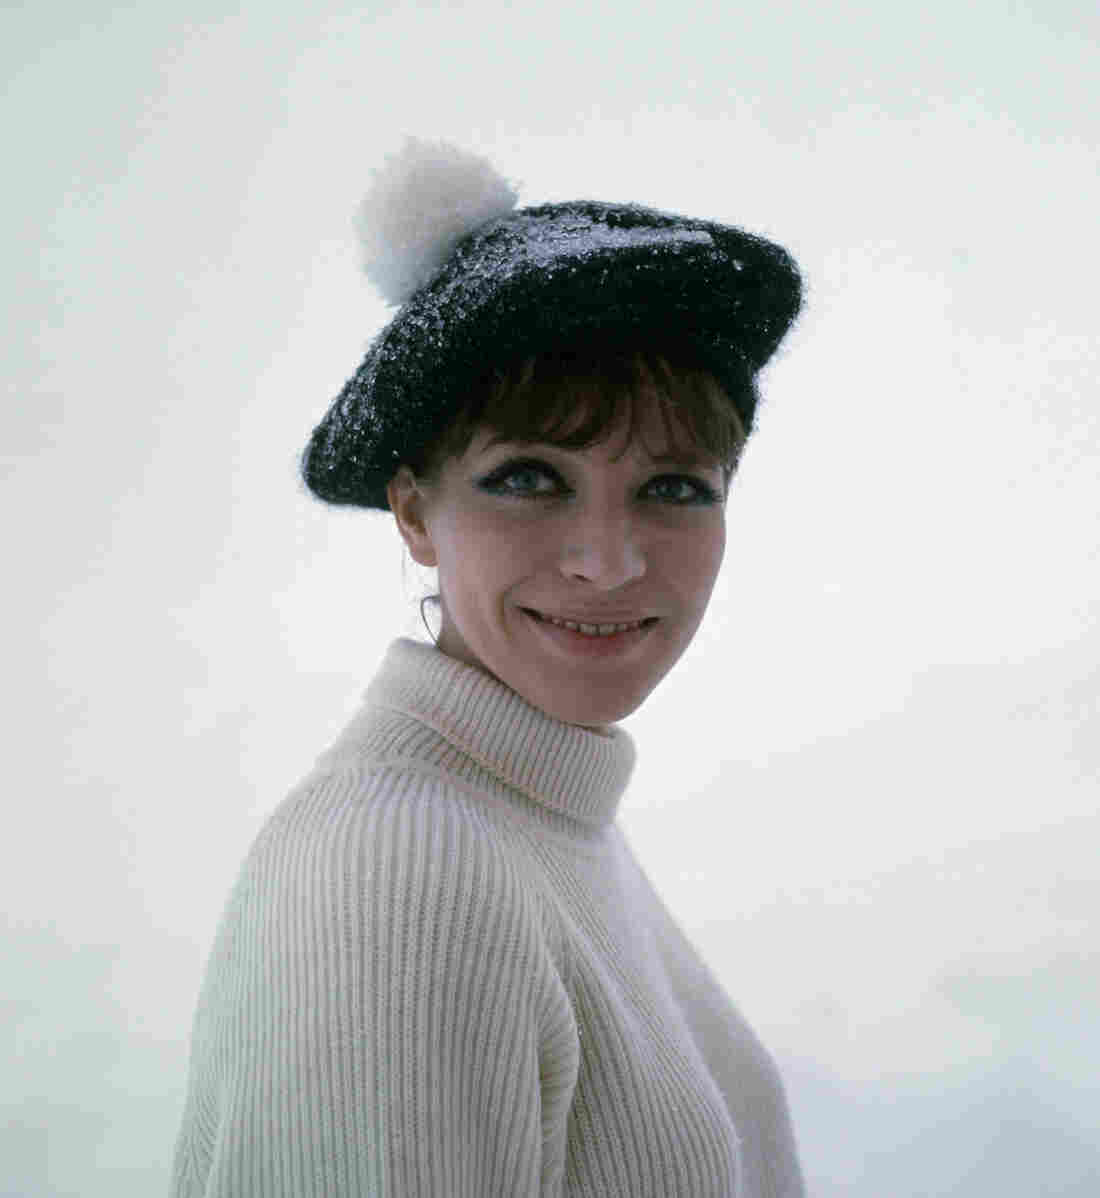 Westlake Legal Group gettyimages-478439668_custom-437ed34997c7ef1d081cd198b48a0ba5fd8cce32-s1100-c15 Anna Karina, Acclaimed French New Wave Actress, Dies At 79